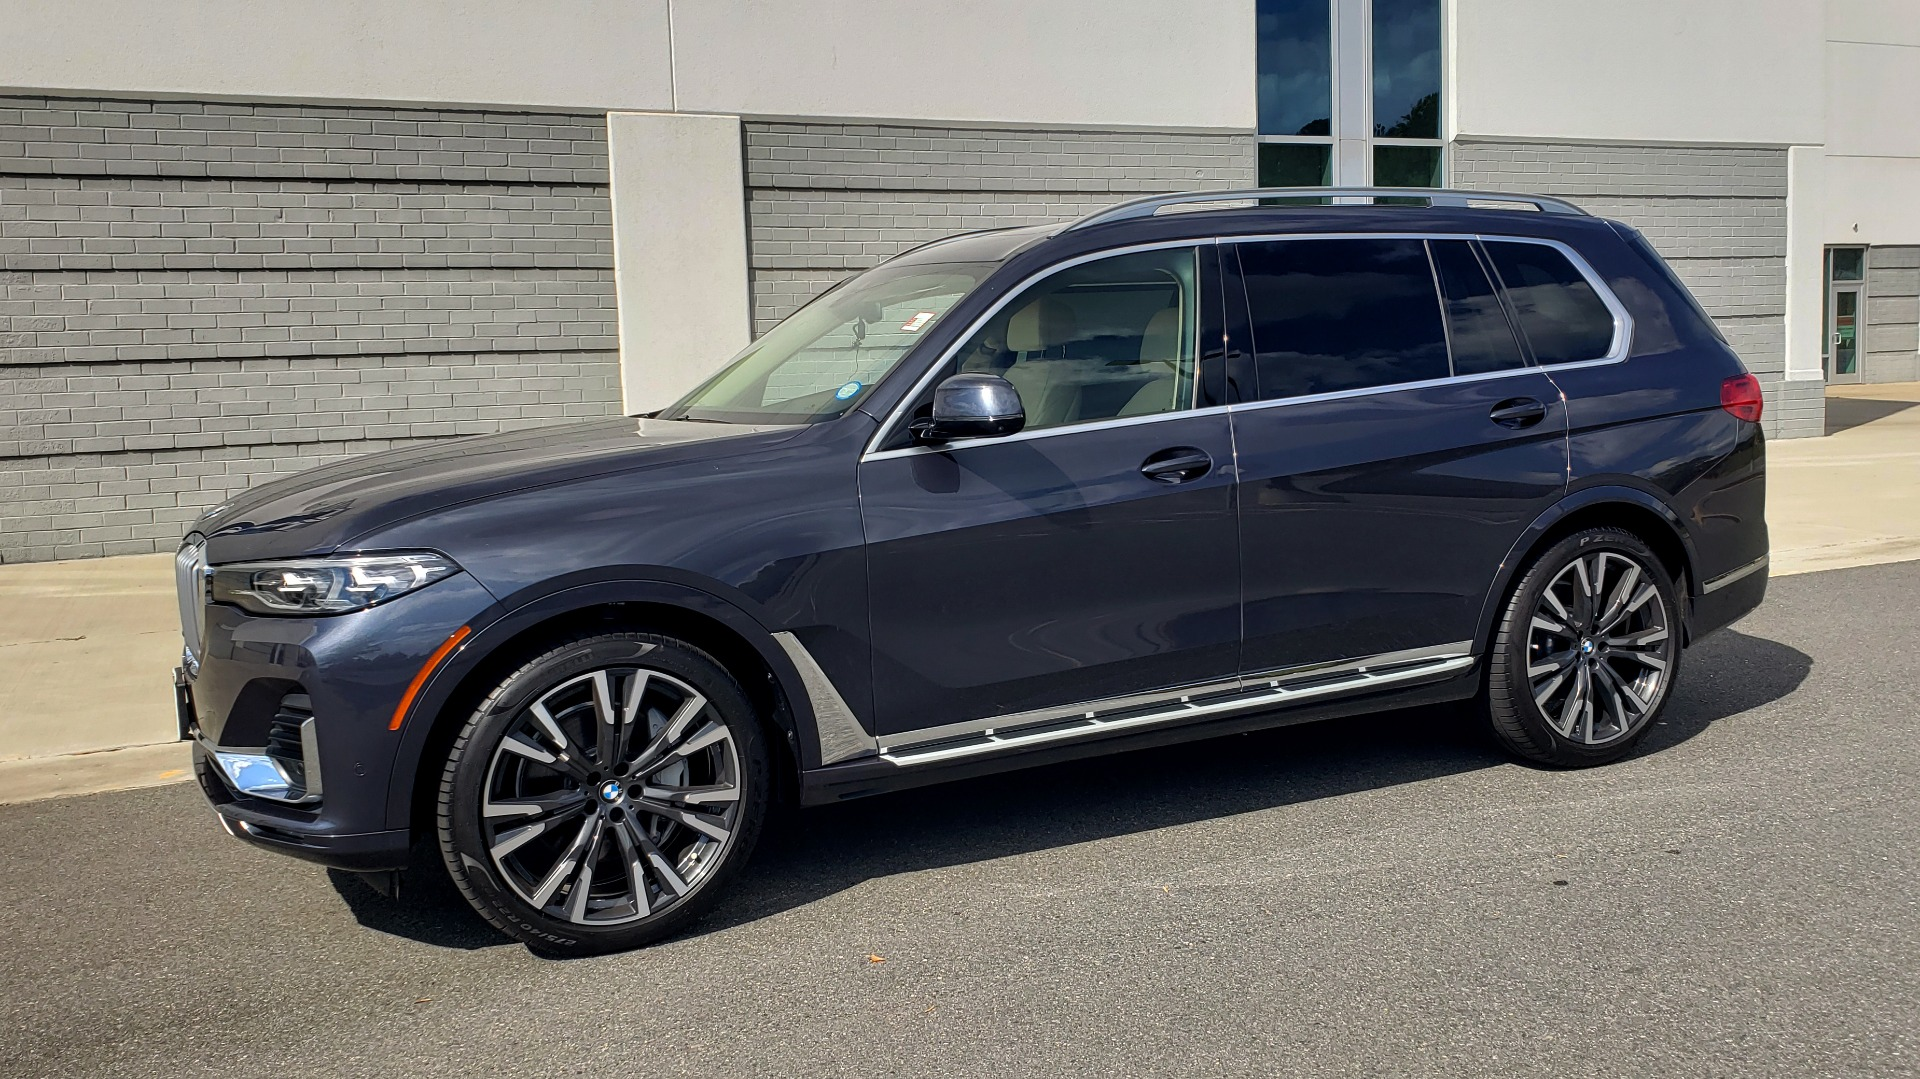 Used 2019 BMW X7 XDRIVE40I PREMIUM / LUXURY / COLD WEATHER / PARK ASST / PANORAMIC SKY / TOW for sale $75,999 at Formula Imports in Charlotte NC 28227 3